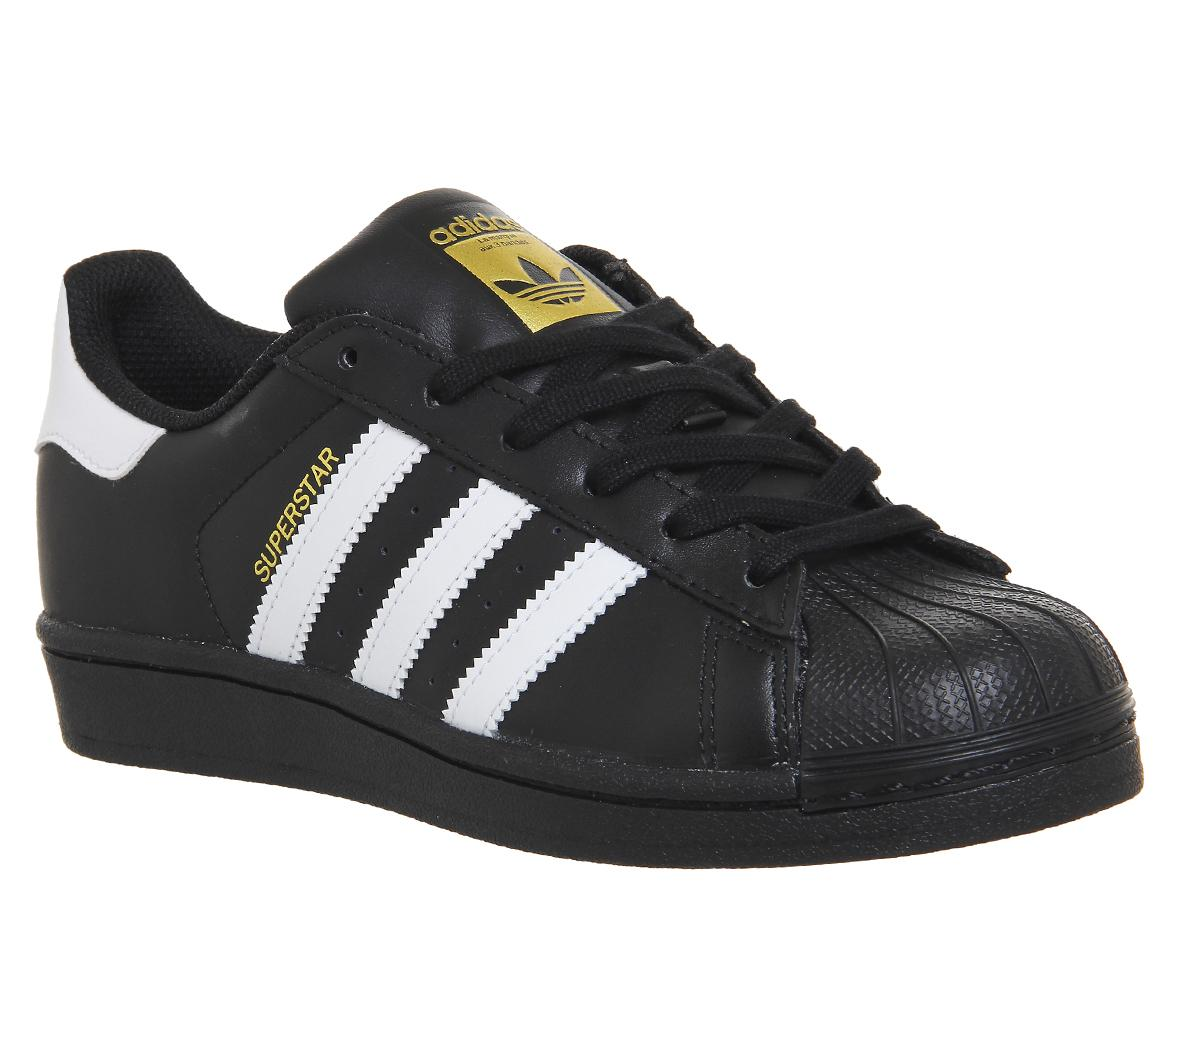 adidas superstar shoes white and black